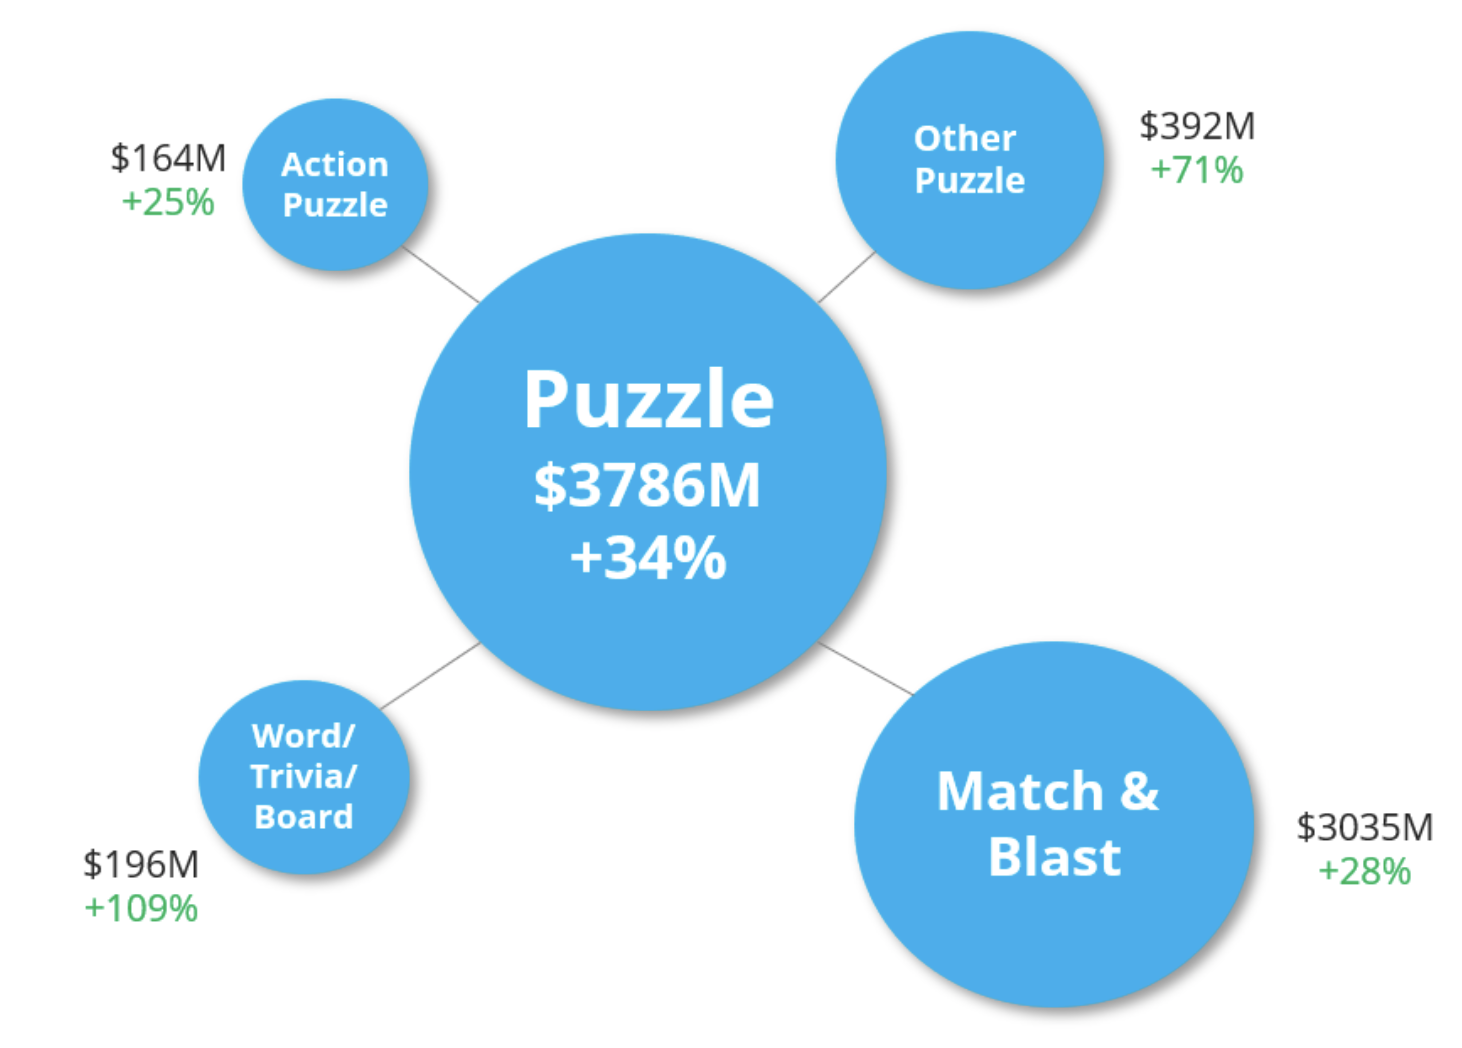 While mature, the Match & Blast sub-category still grew revenues by almost a third. Most revenue growth was nevertheless in Board and Word games, which likely grew even more if ad-revenue were to be accounted in this chart.